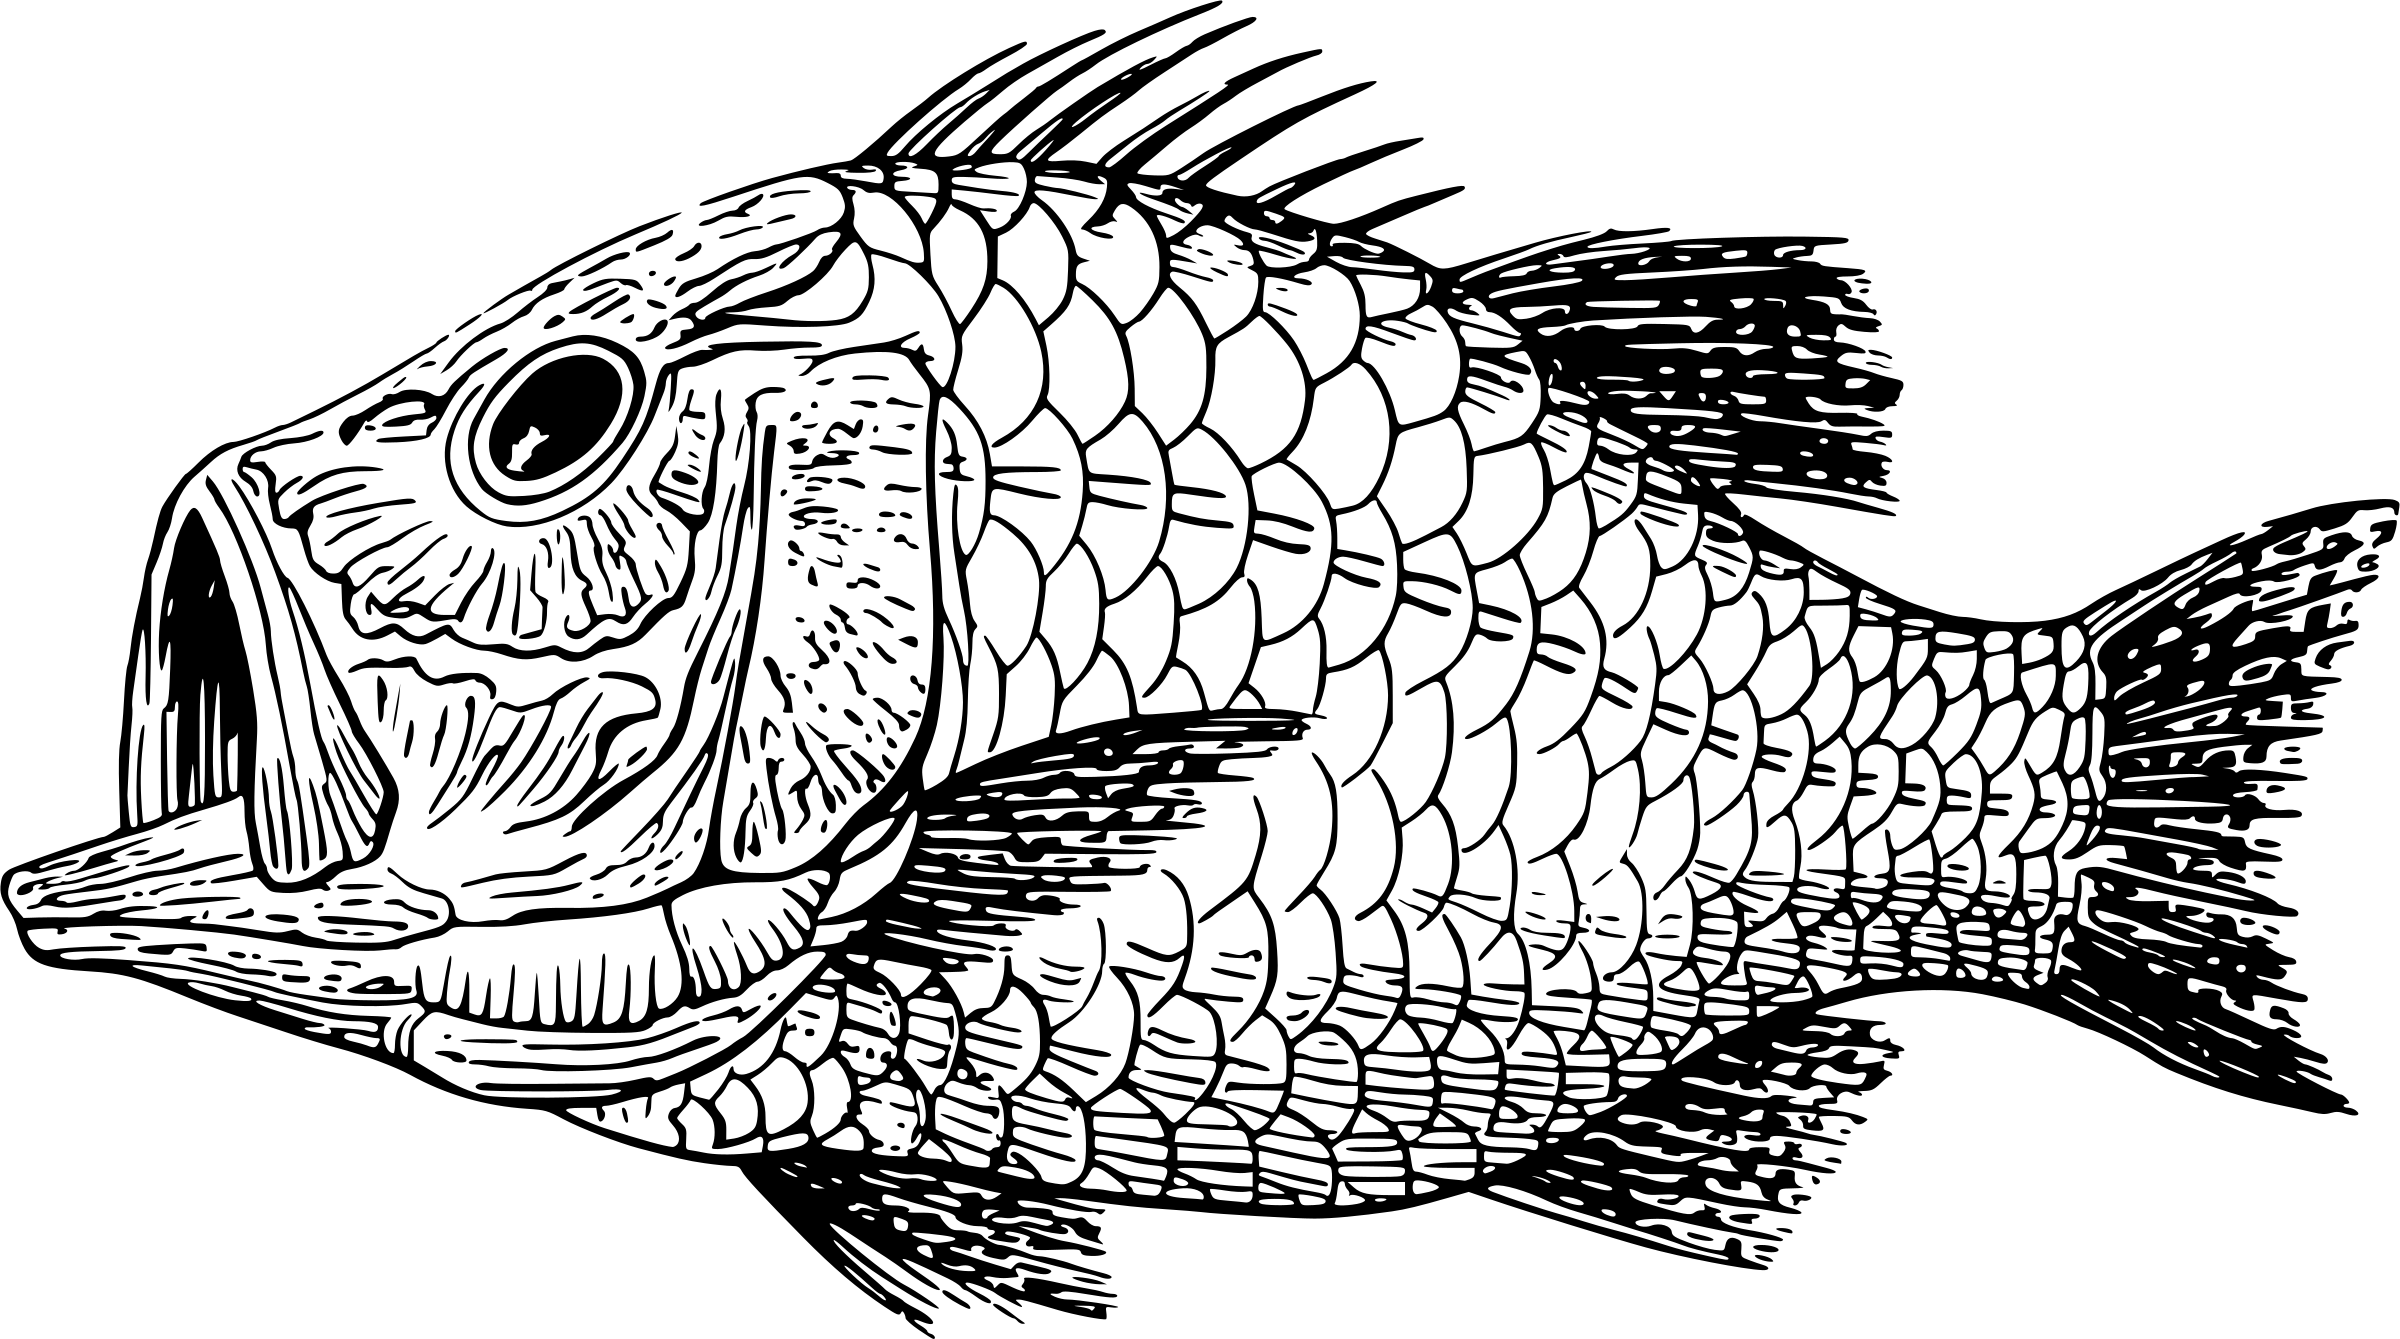 Download Vector line art of tropical fish. Library of bluegill fish picture library png files Clipart 1svg.com